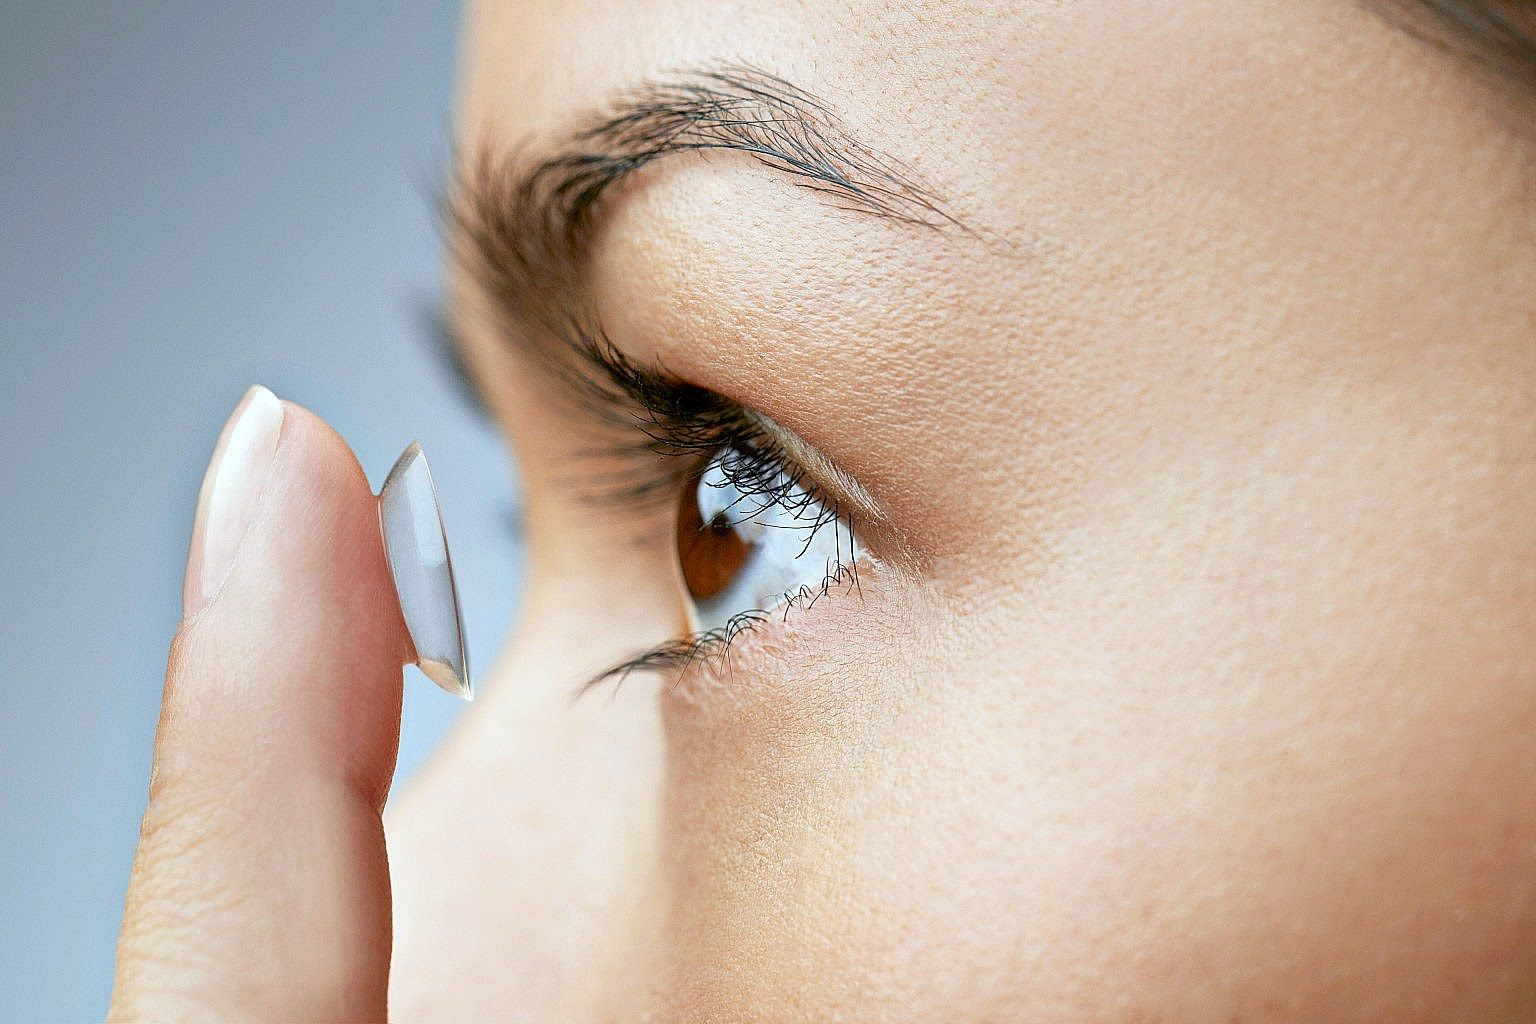 Contact Lenses For Beginners How To Wear, Remove, Clean